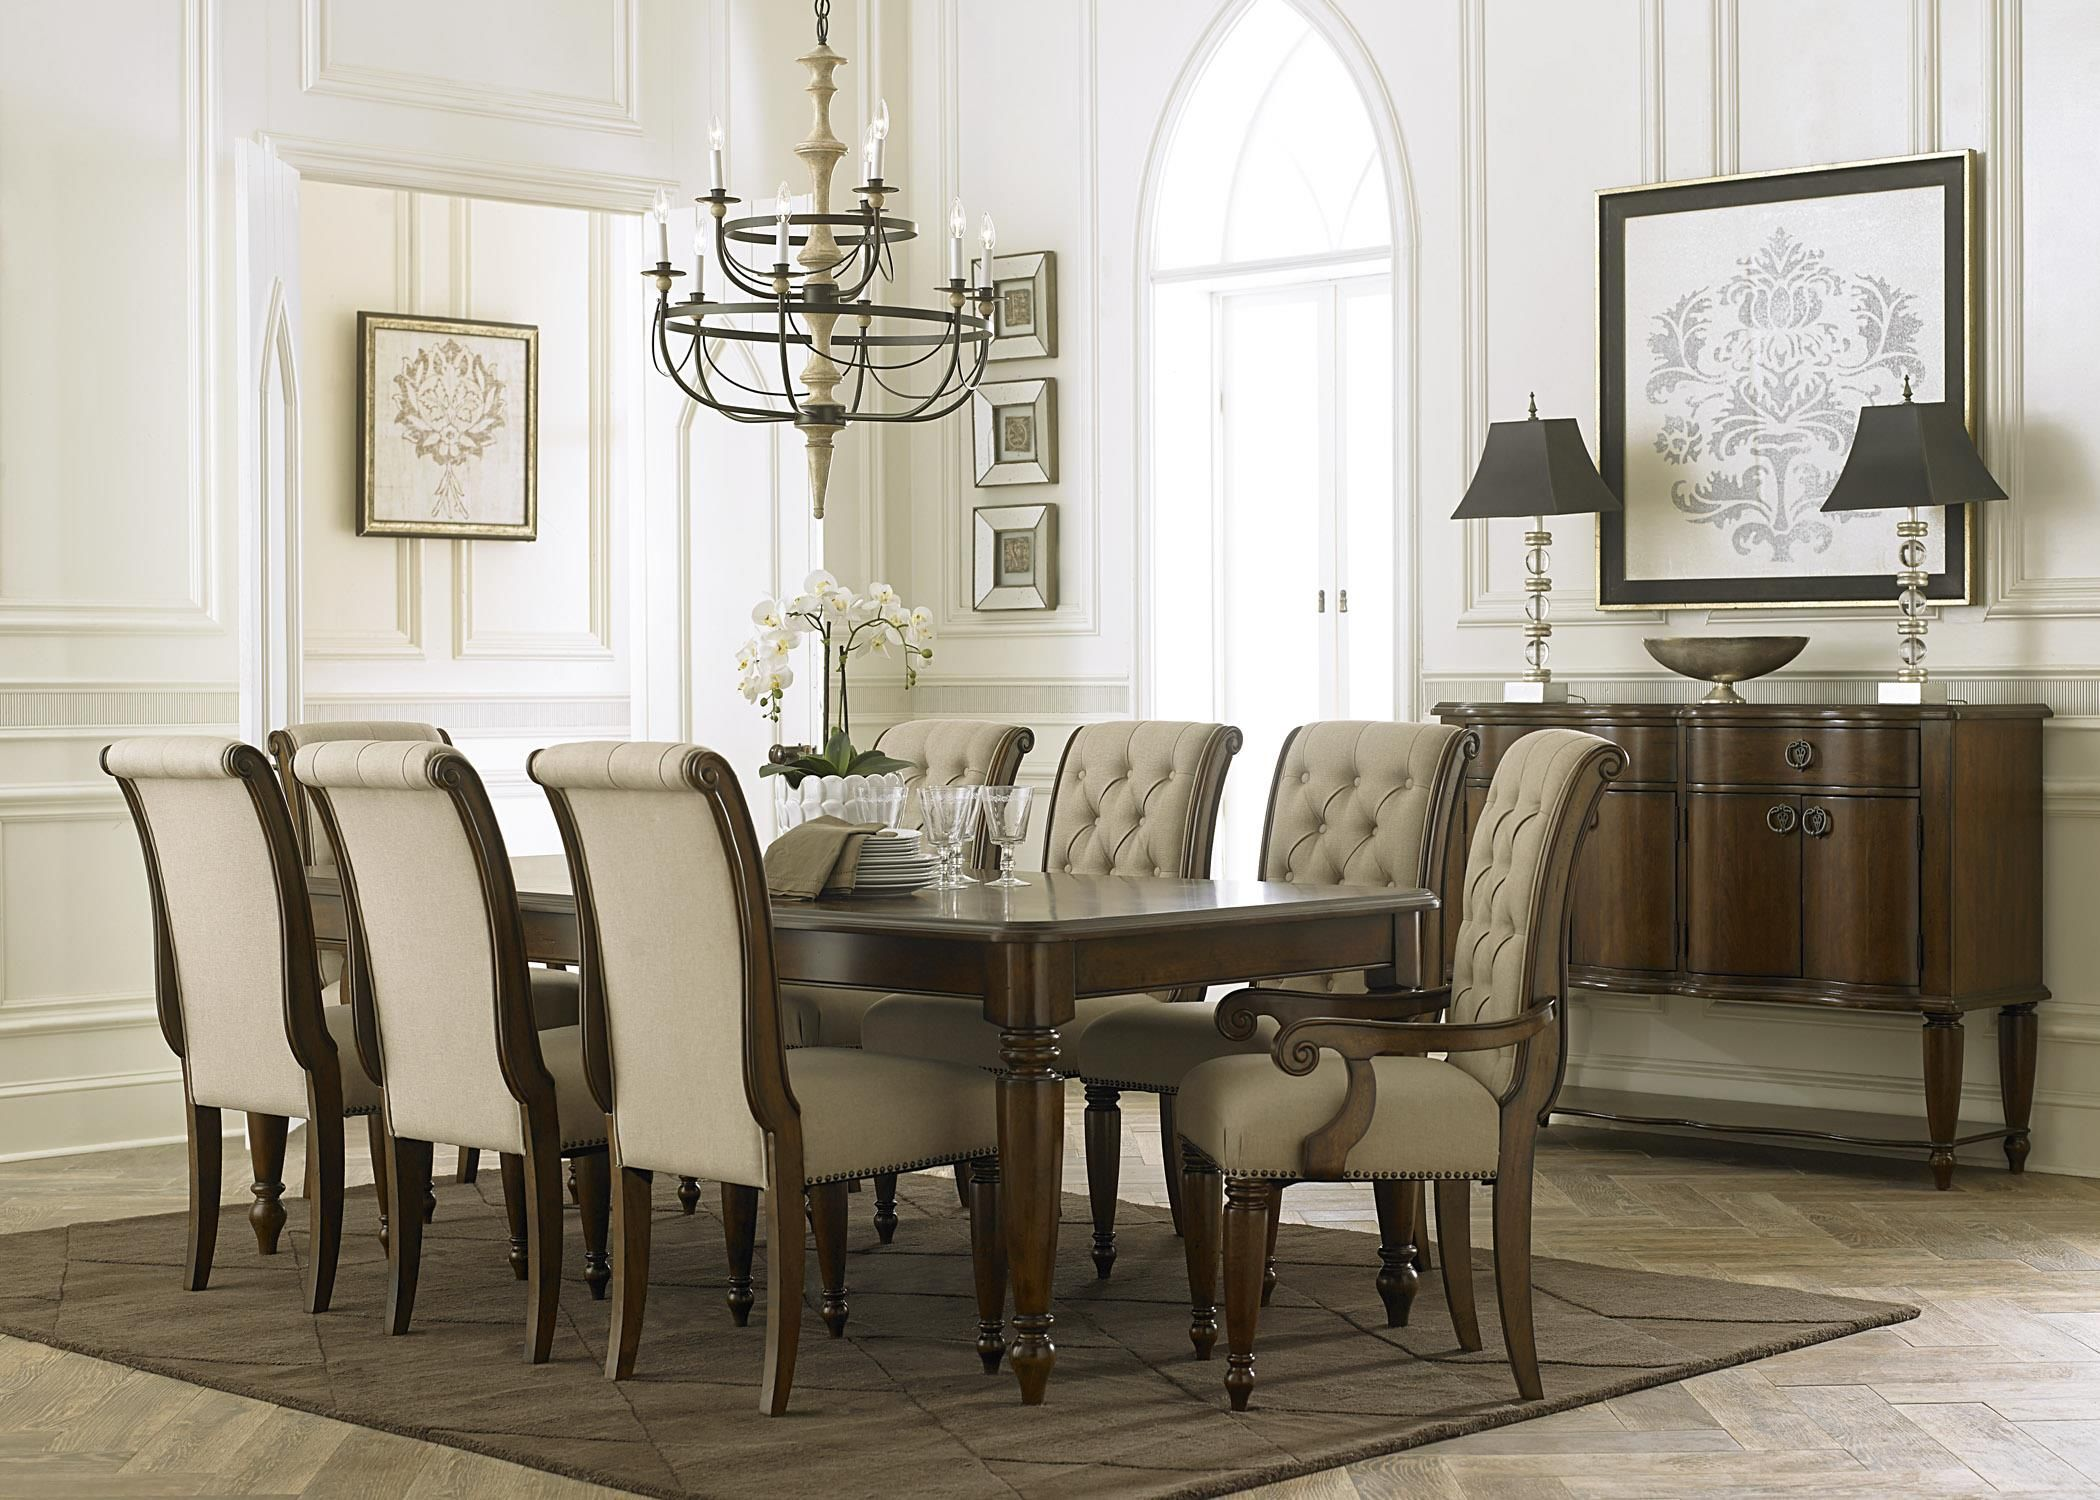 Cotswold Formal Dining Room Group By Sarah Randolph J At Virginia .